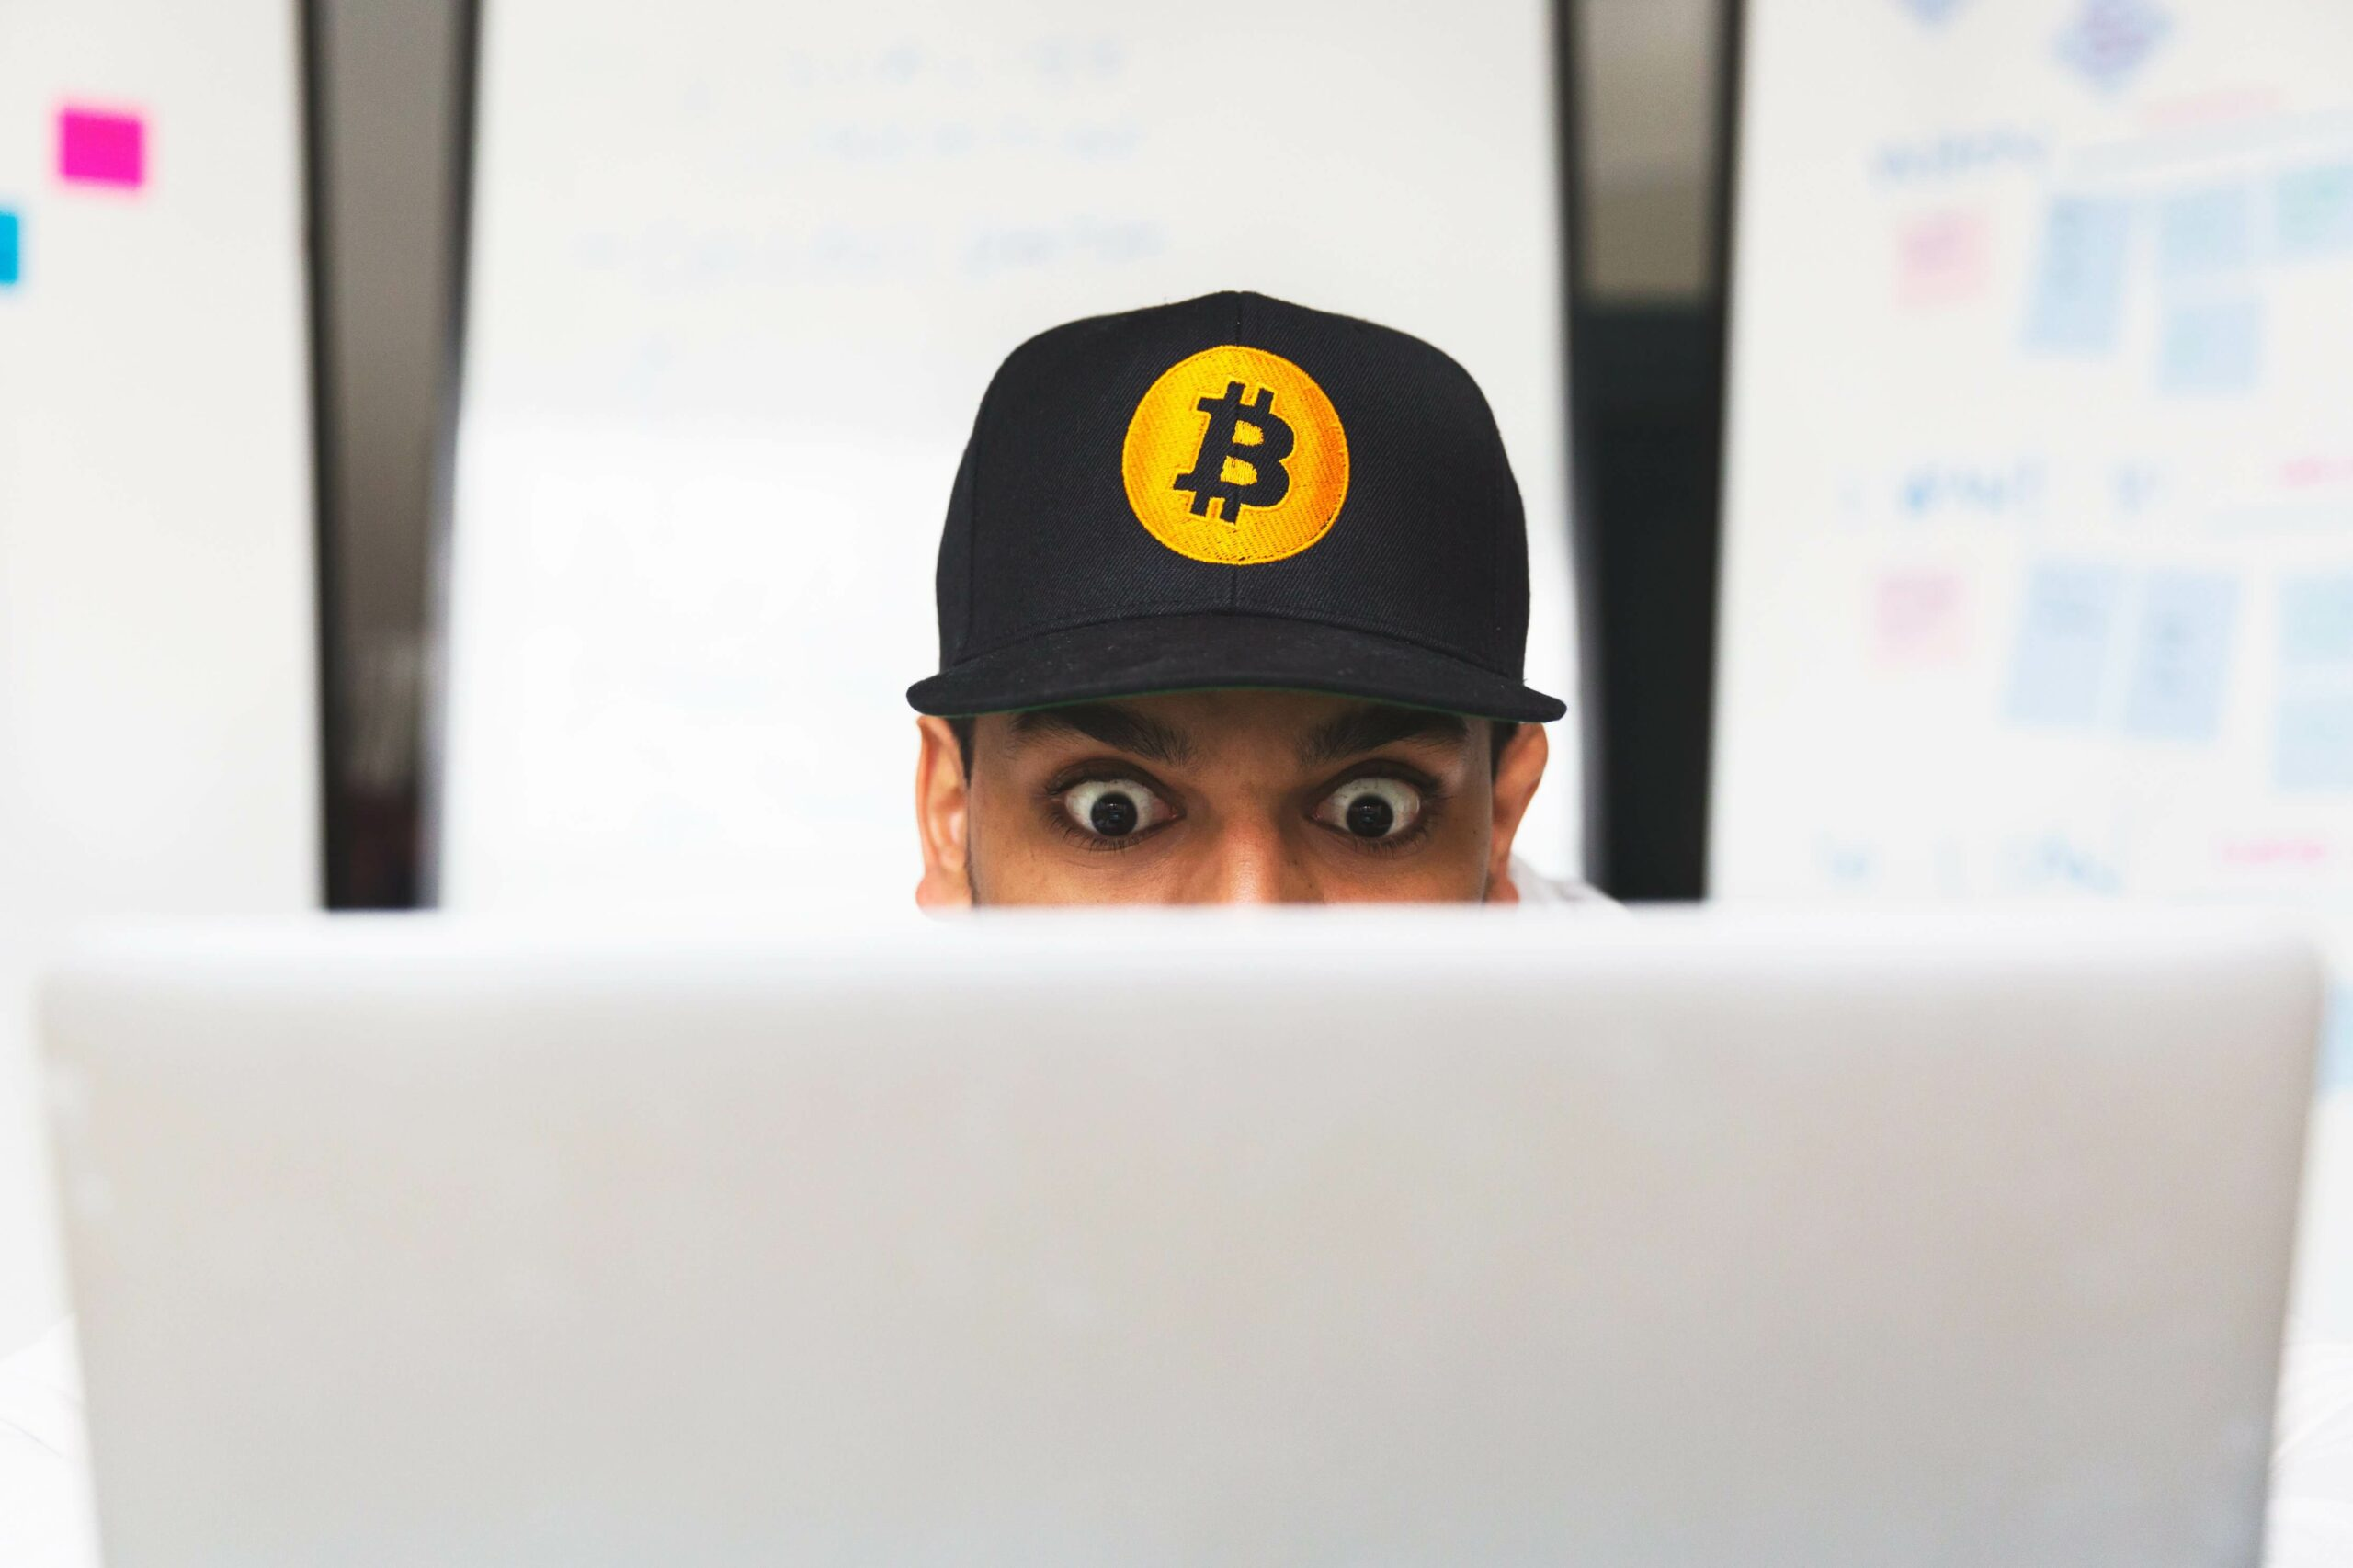 Cryptocurrency Traders & SEO Expert Similarities?